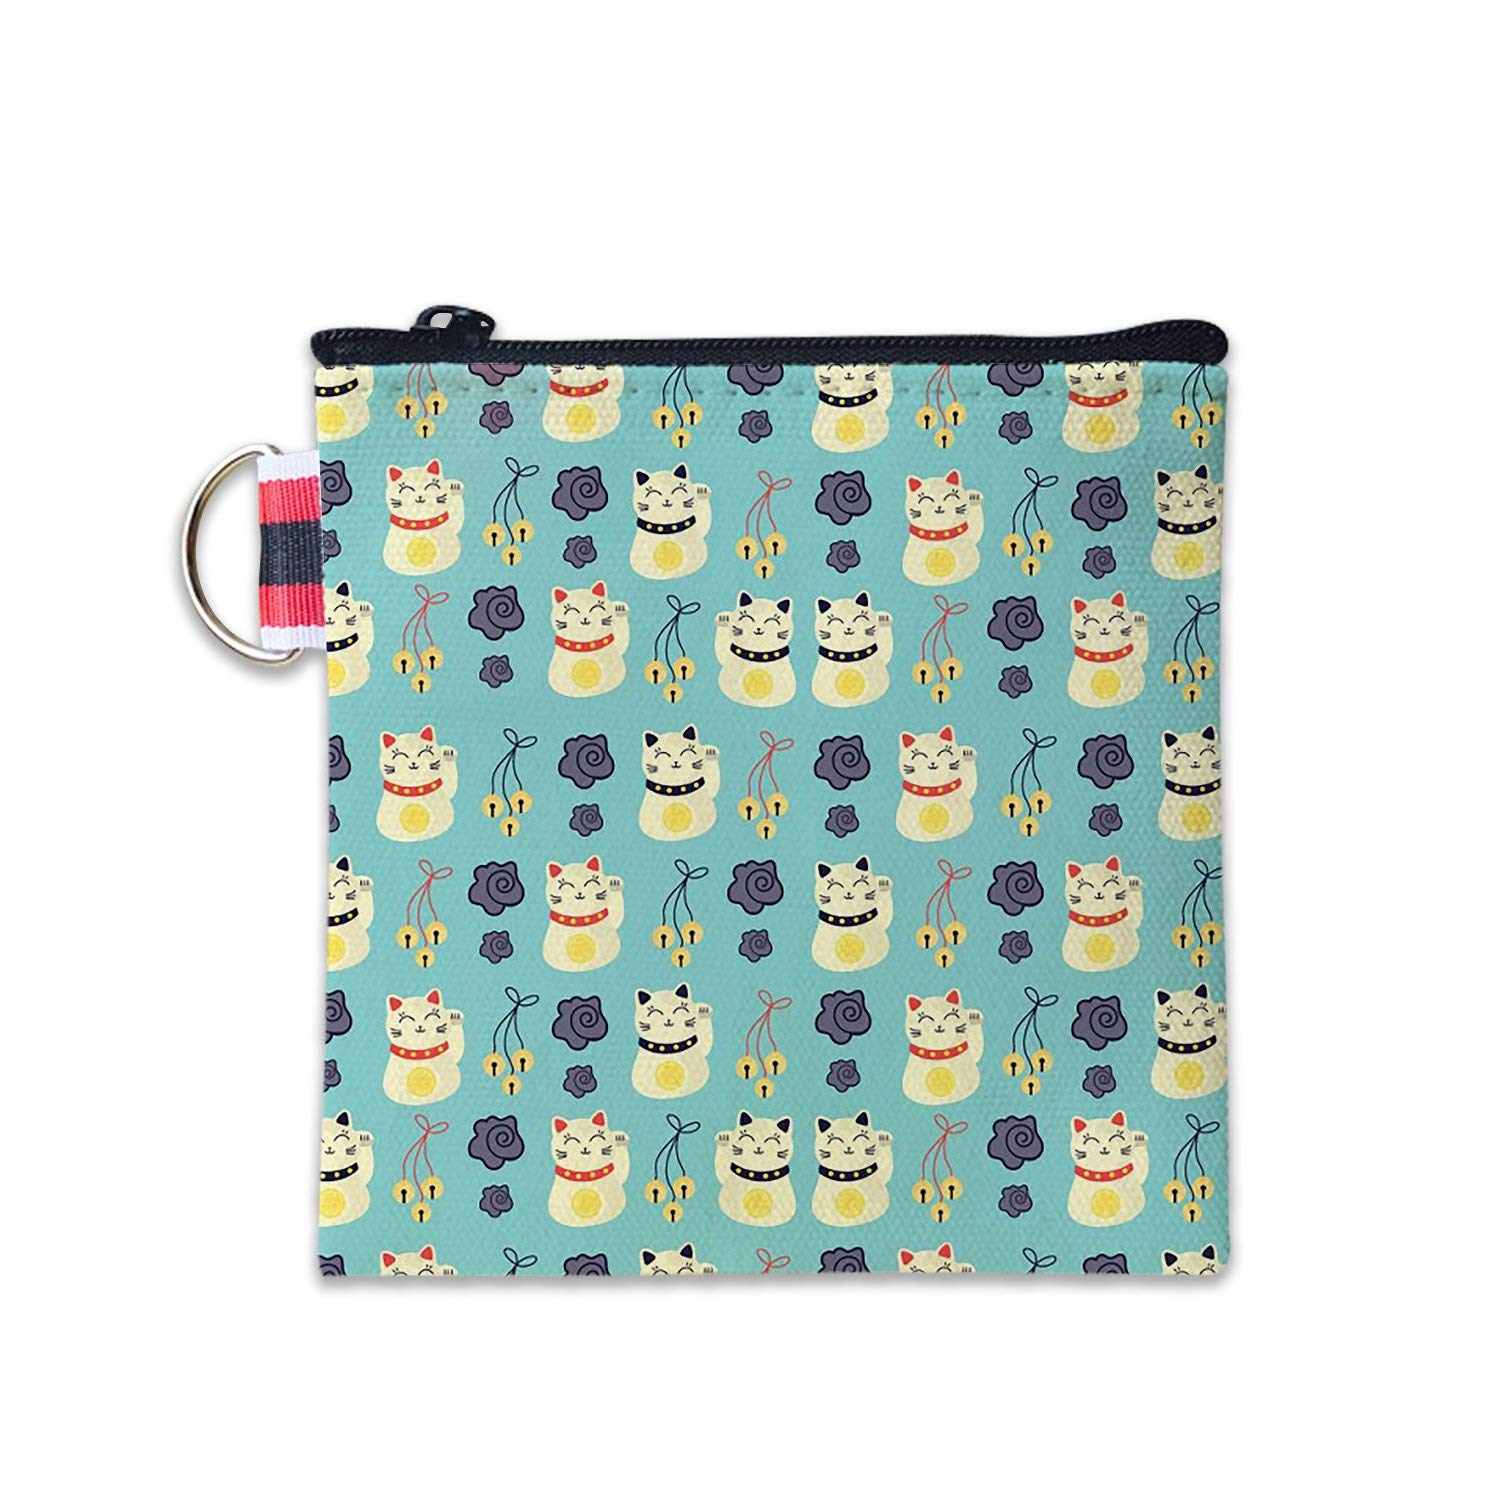 91744009922c Cheap Chinese Money Bag, find Chinese Money Bag deals on line at ...